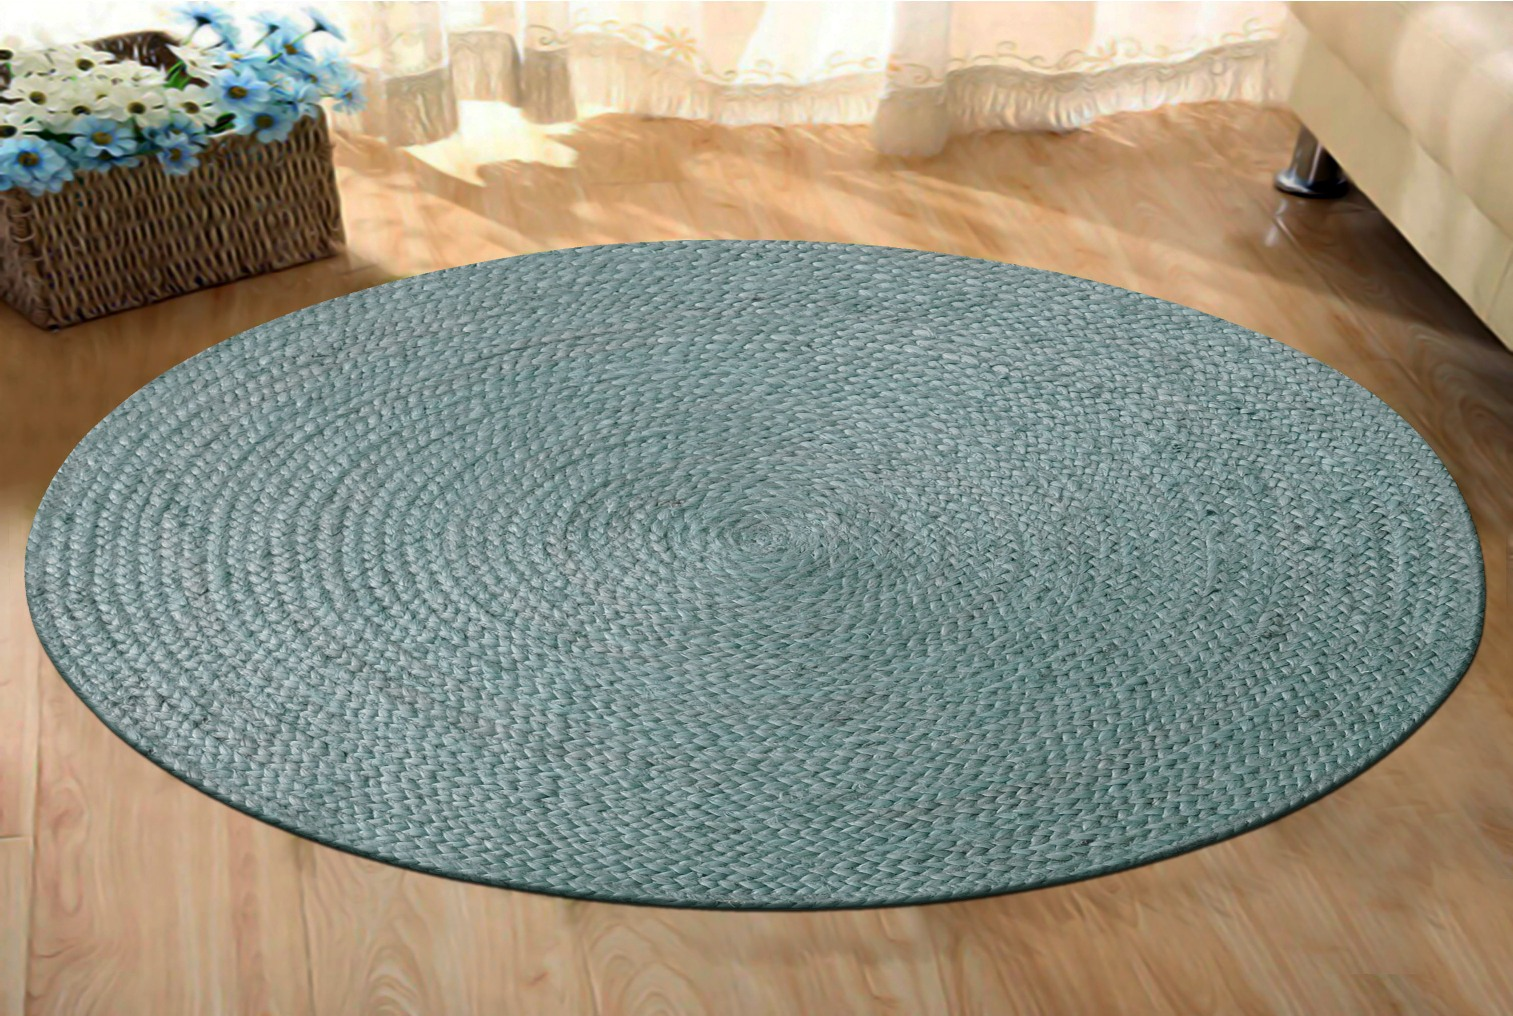 round under the sometimes sku numbers is polo following jute atr also manufacturer natural listed nat rug